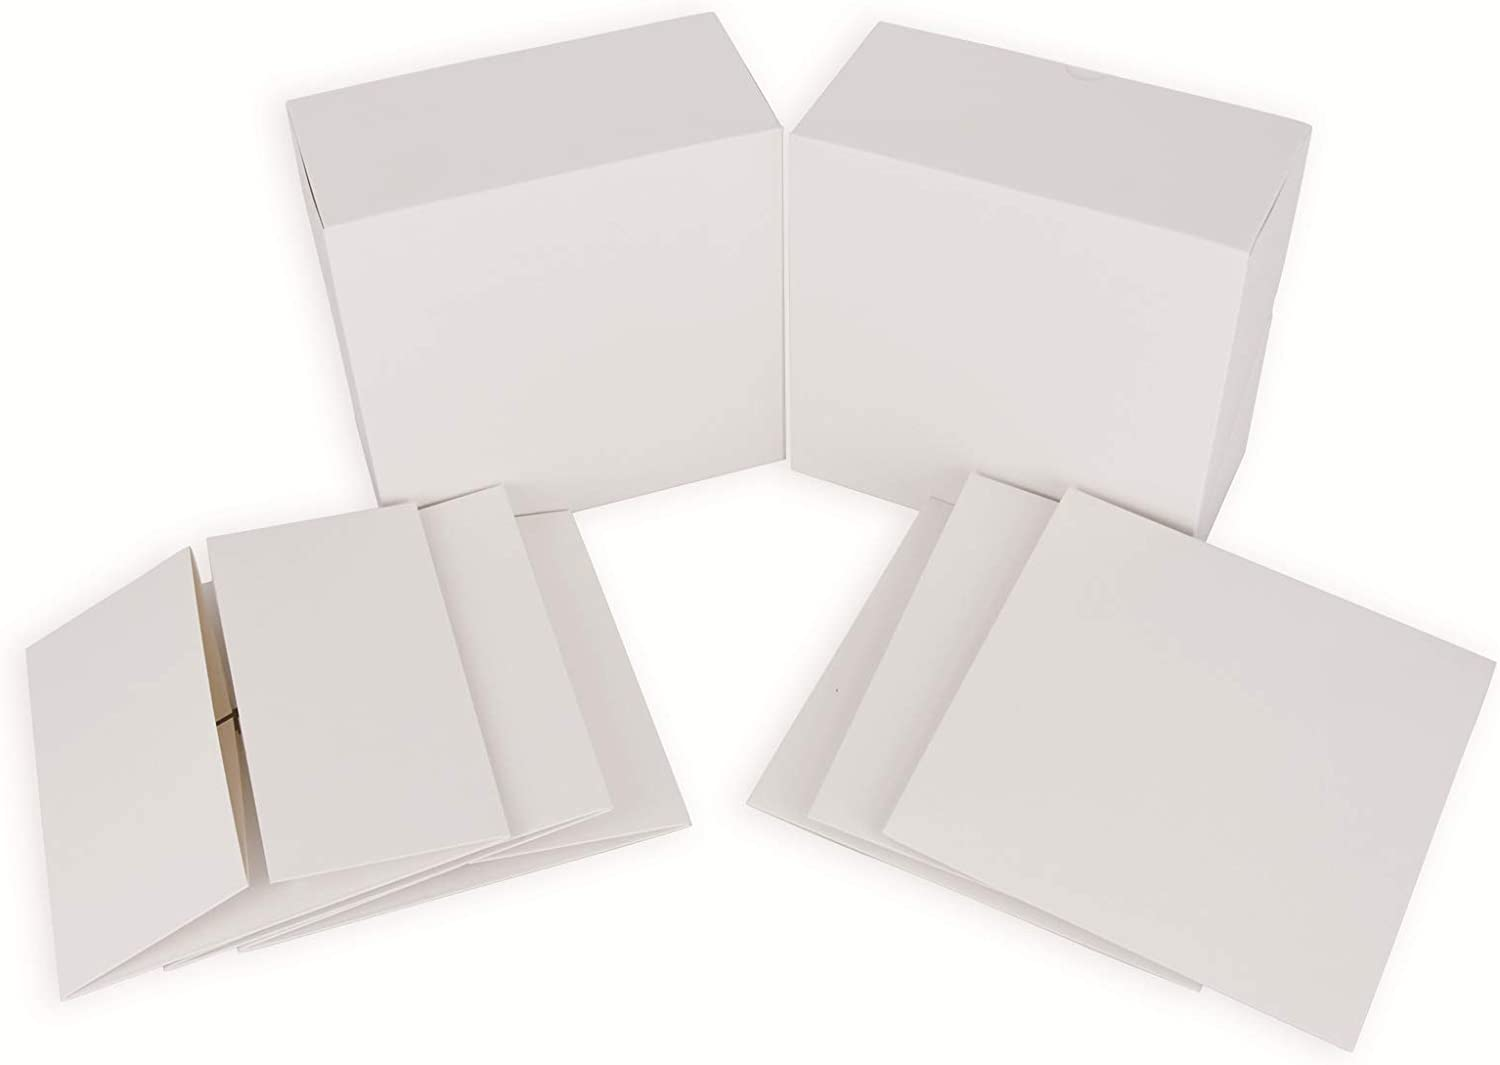 HUAPRINT White Gift Box 10 Sets 8x8x4 Cardboard Gift Boxes,Bridesmaid Proposal Box,Kraft Square Fold Box for Present Packaging,Holiday,Party,Birthday,Wedding,Crafting